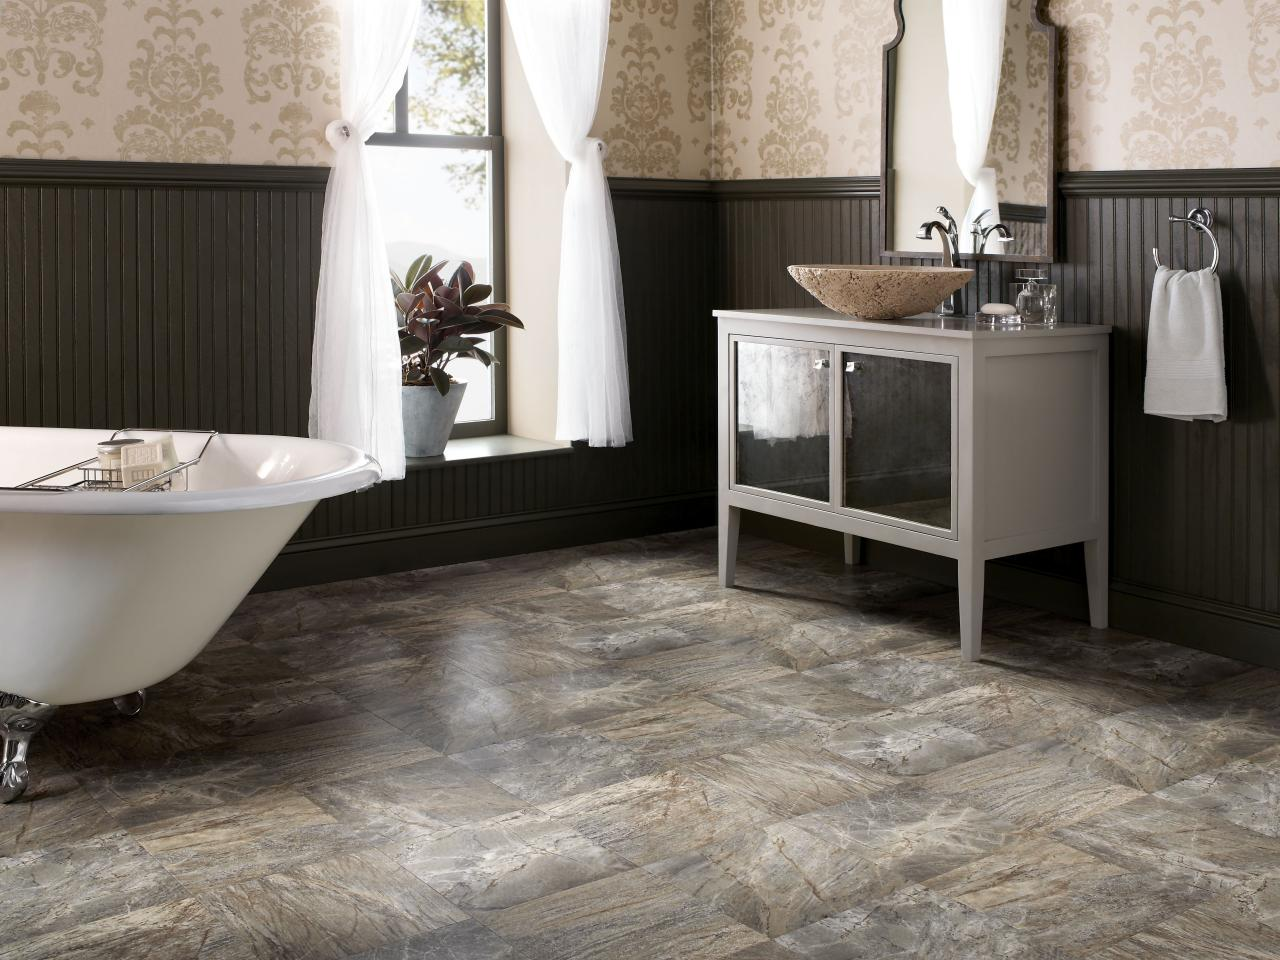 Bathroom flooring options Best flooring options for small bathrooms